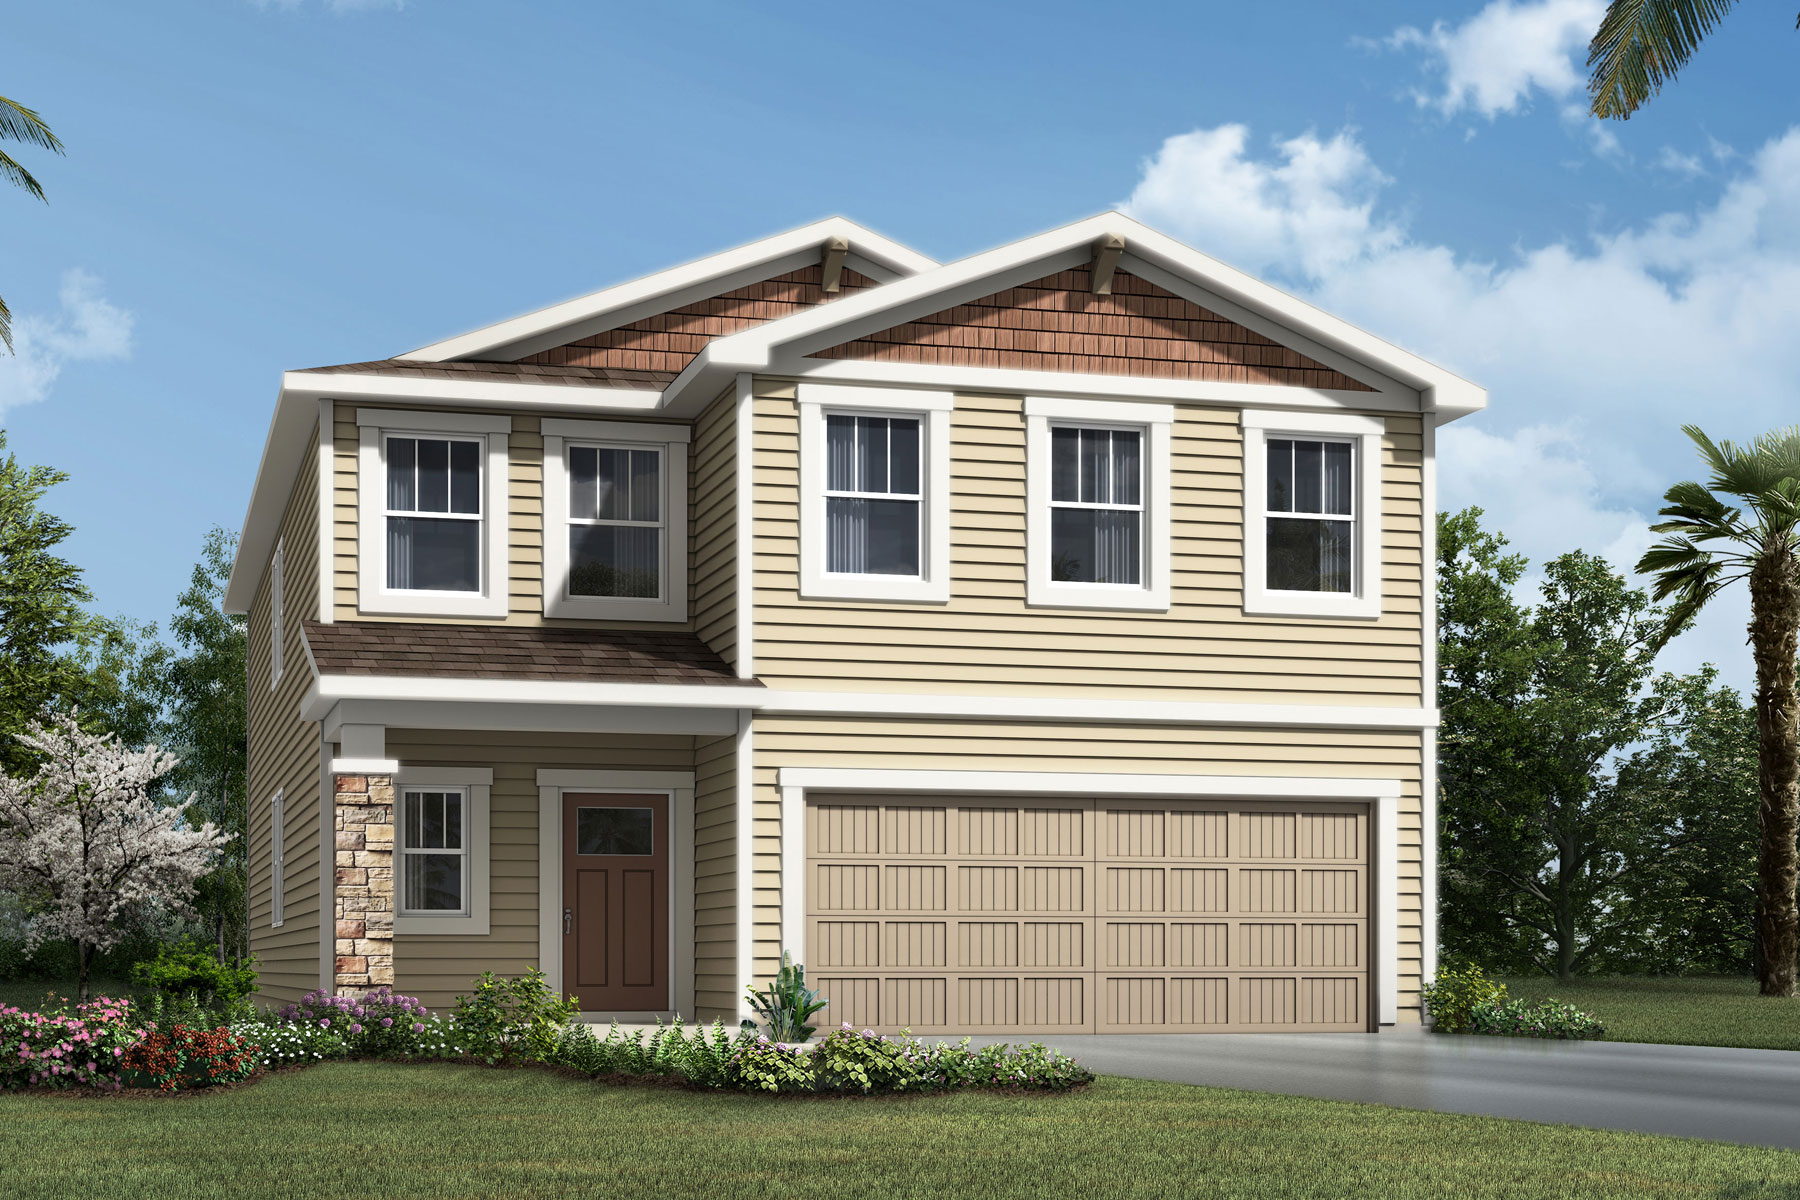 Whitney Plan jax_whitney_craftsman at RiverTown - Haven in St. Johns Florida by Mattamy Homes